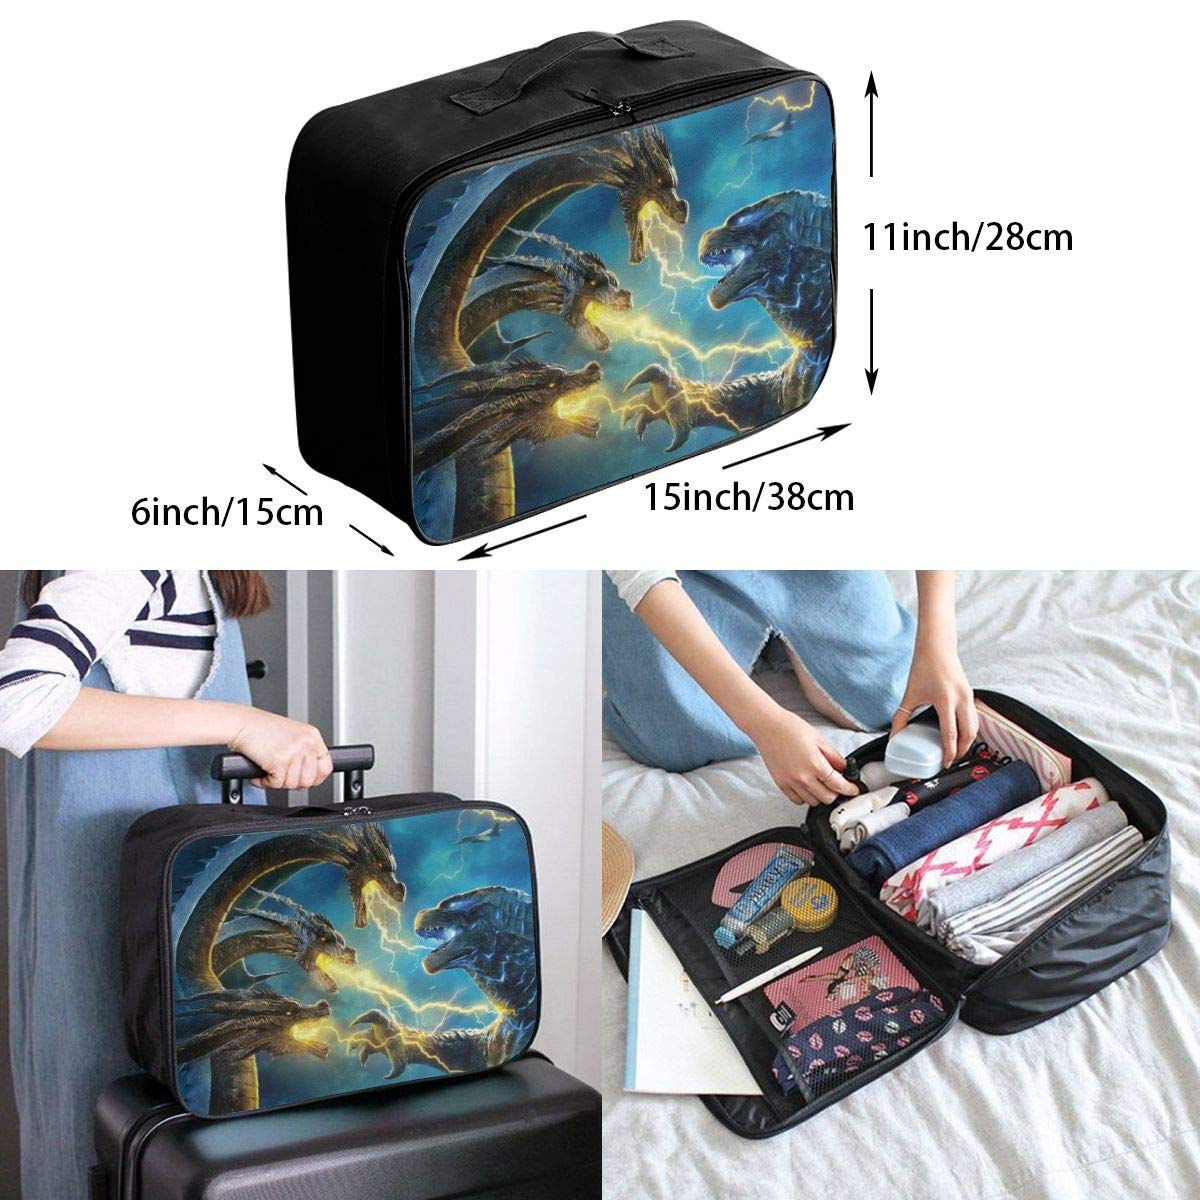 Cheny King God-Zilla Ghidorah Travel Duffel Bag Lightweight Waterproof Large Capacity Portable Luggage Bag